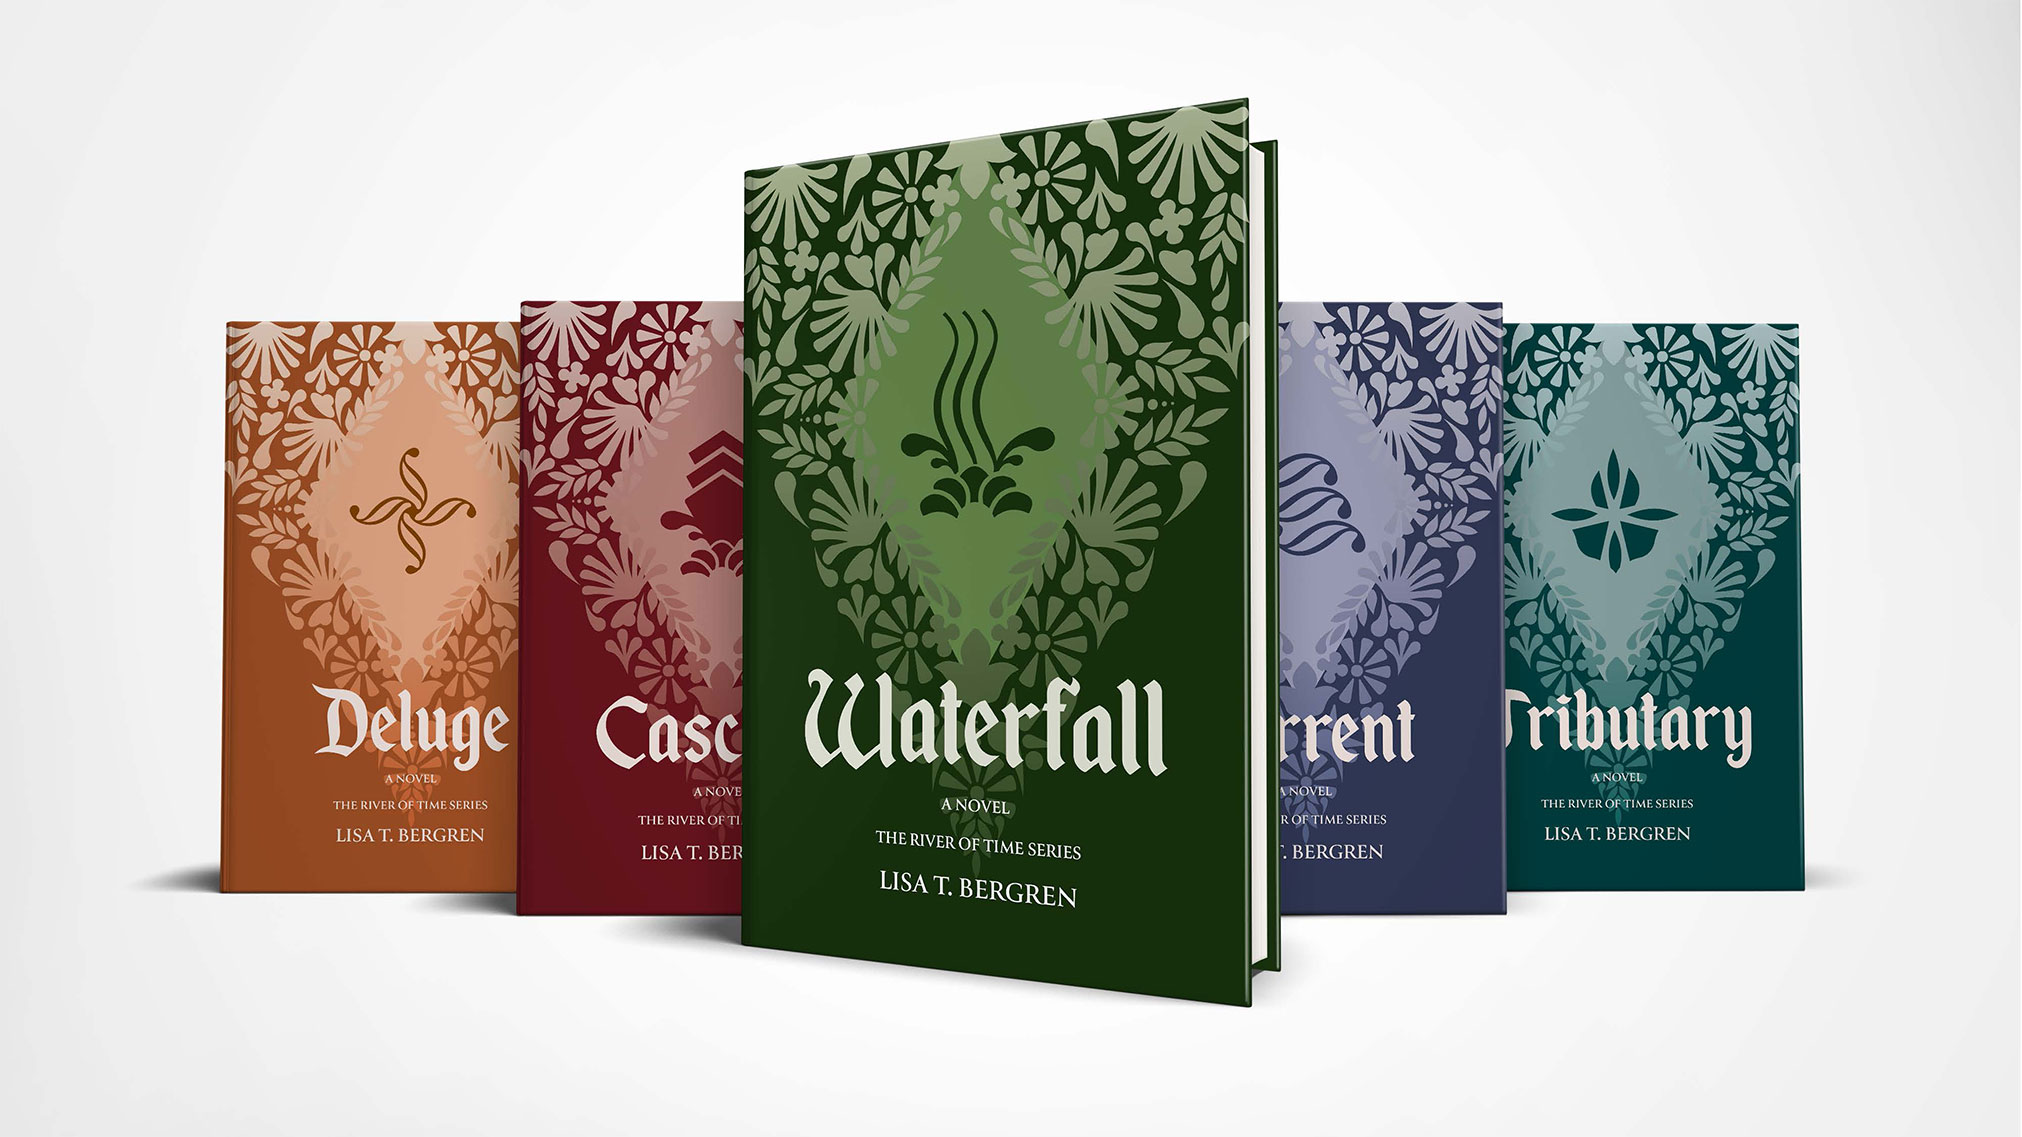 I redesigned the book covers to The River of Time Series, taking a different design path then the original cover by using Illustration.